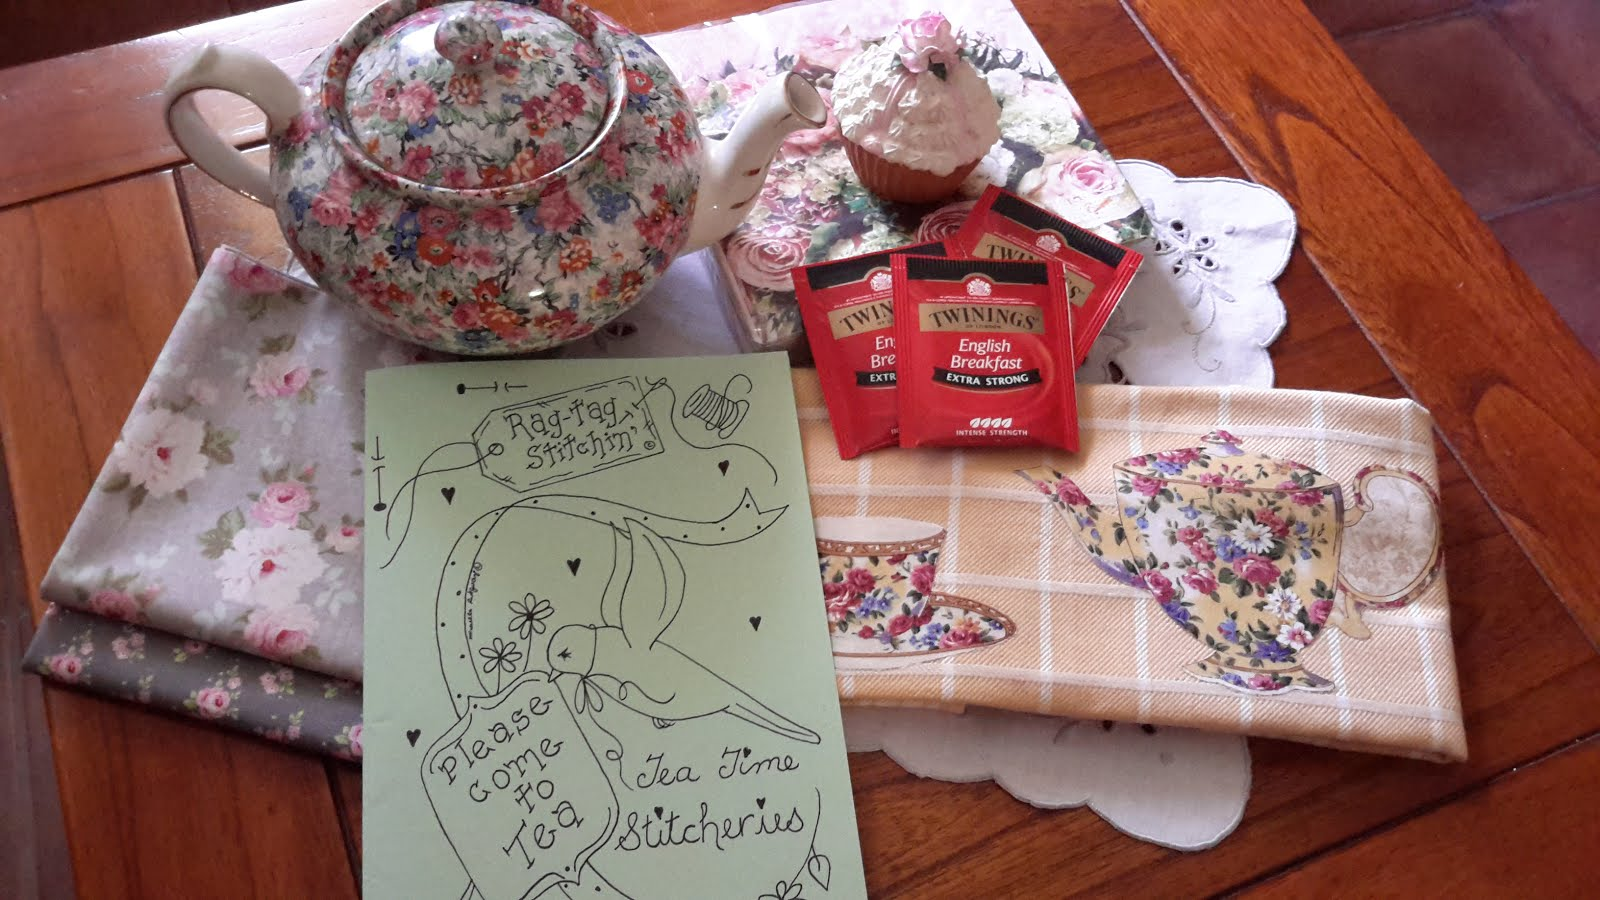 PLEASE COME TO TEA STITCHERY PATTERNS